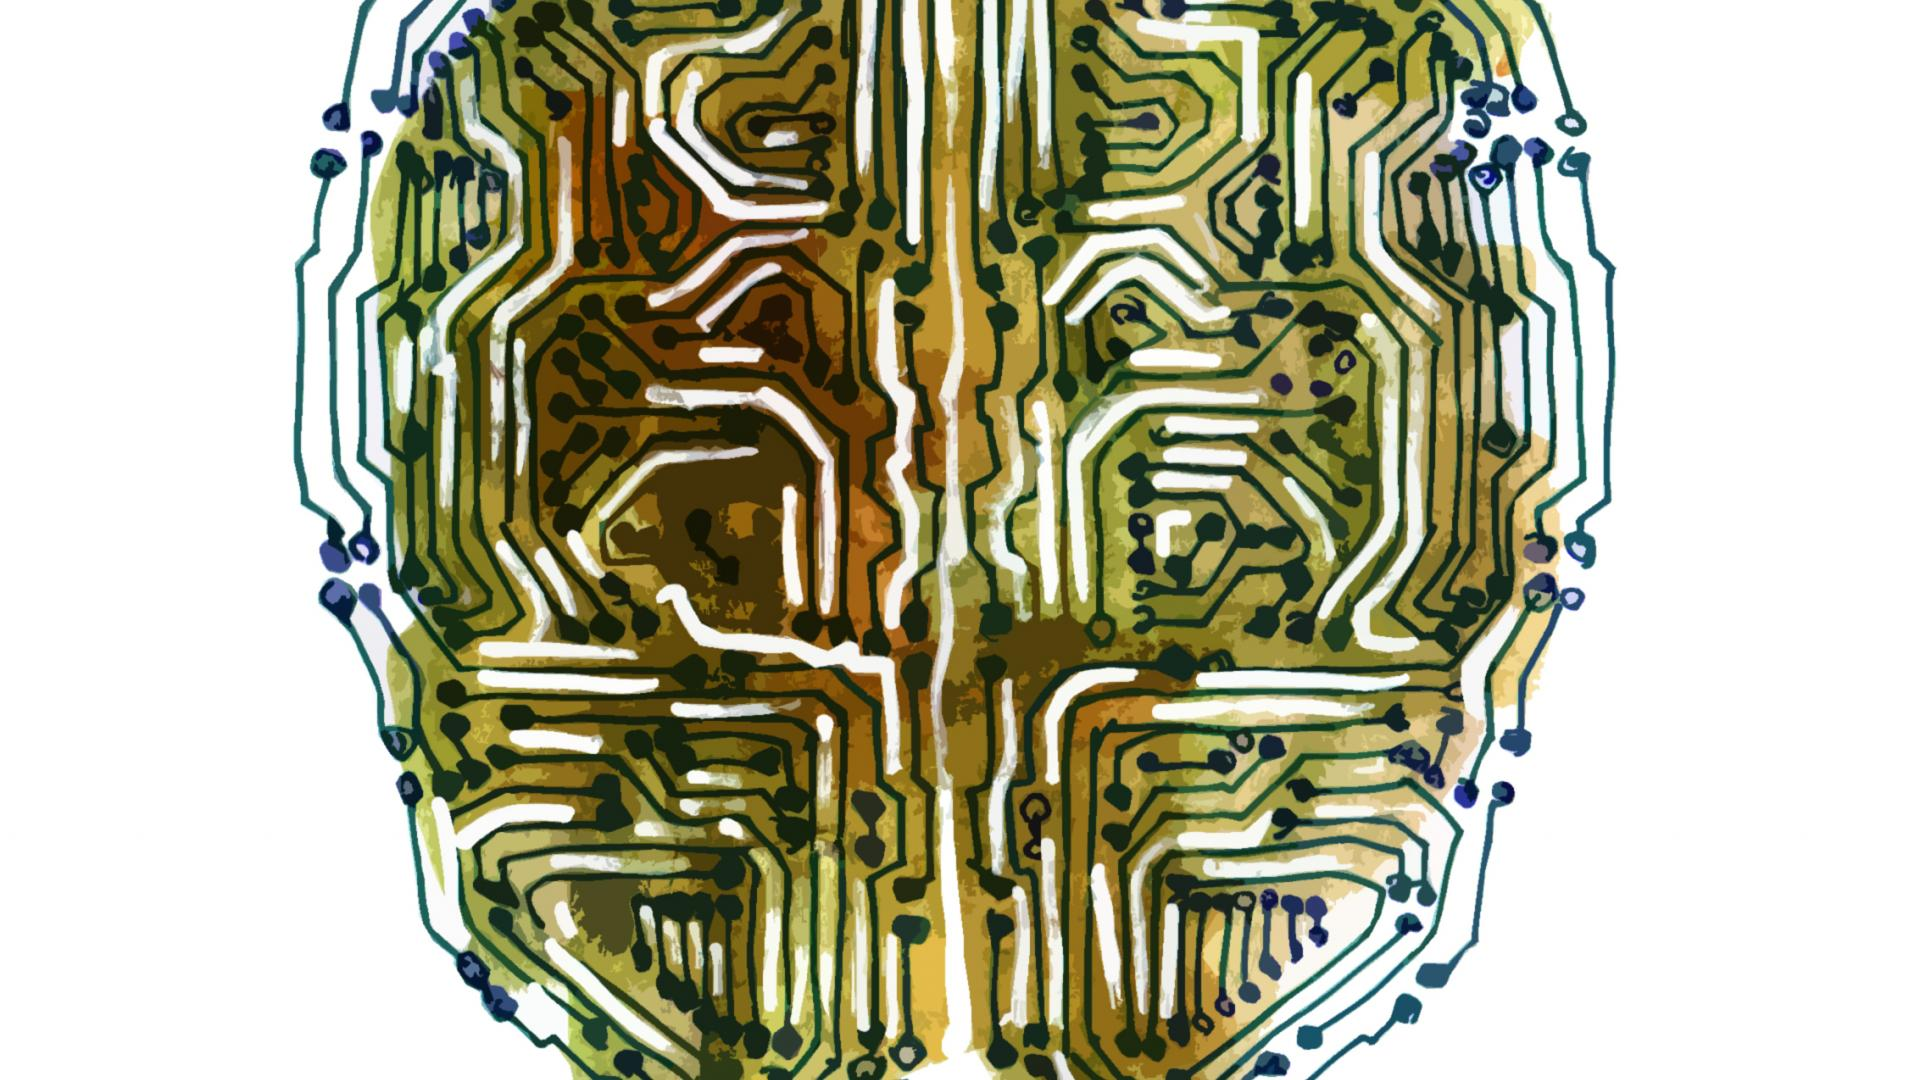 sensorsLab_openings_BrainInspiredComputing.jpg